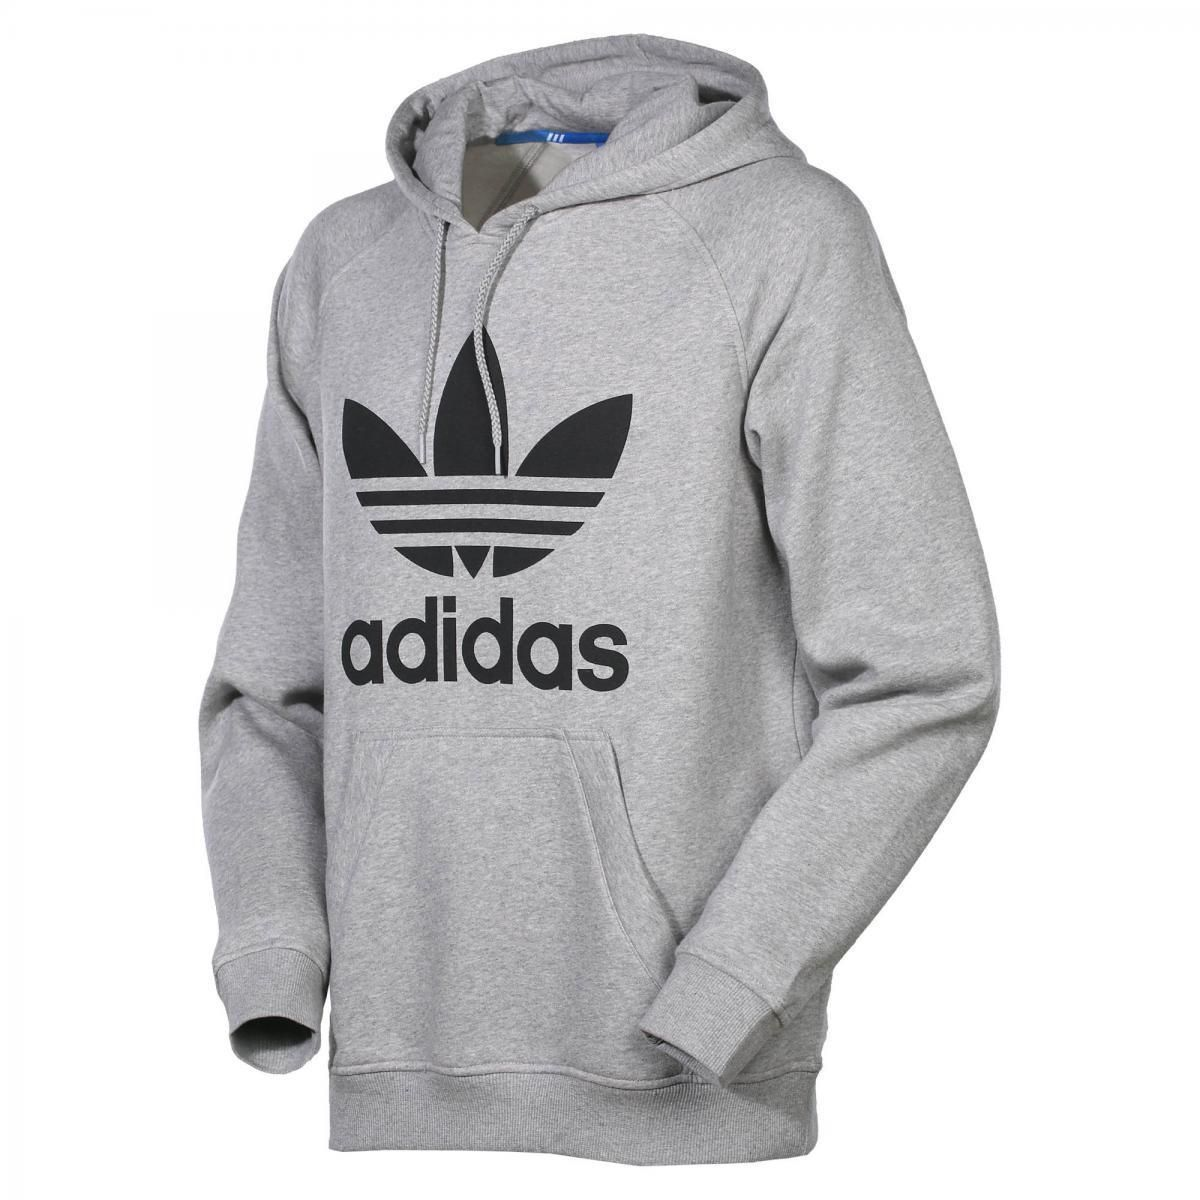 Adidas Mens Size S M L Xl Trefoil Logo Hoody Overhead Sweater Fleece Grey  Retro 3f3087193